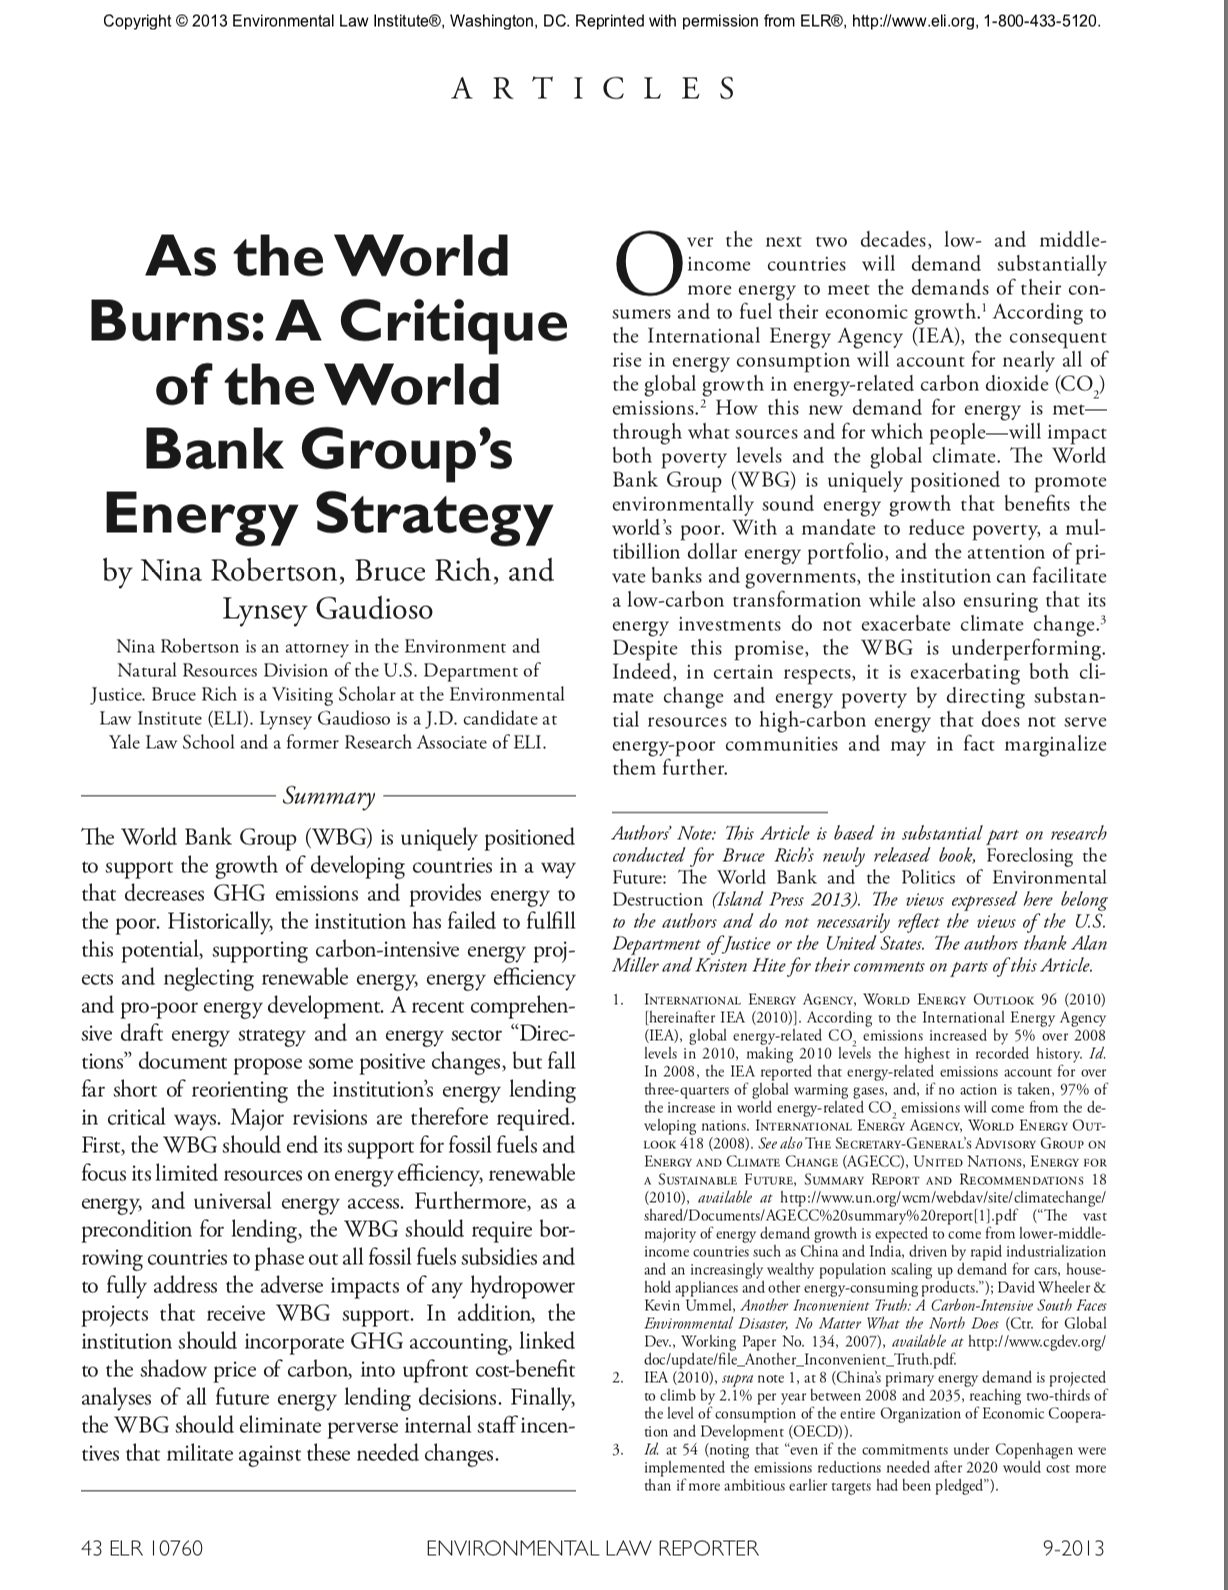 As the World Burns: A Critique of the World Bank Group's Energy Strategy